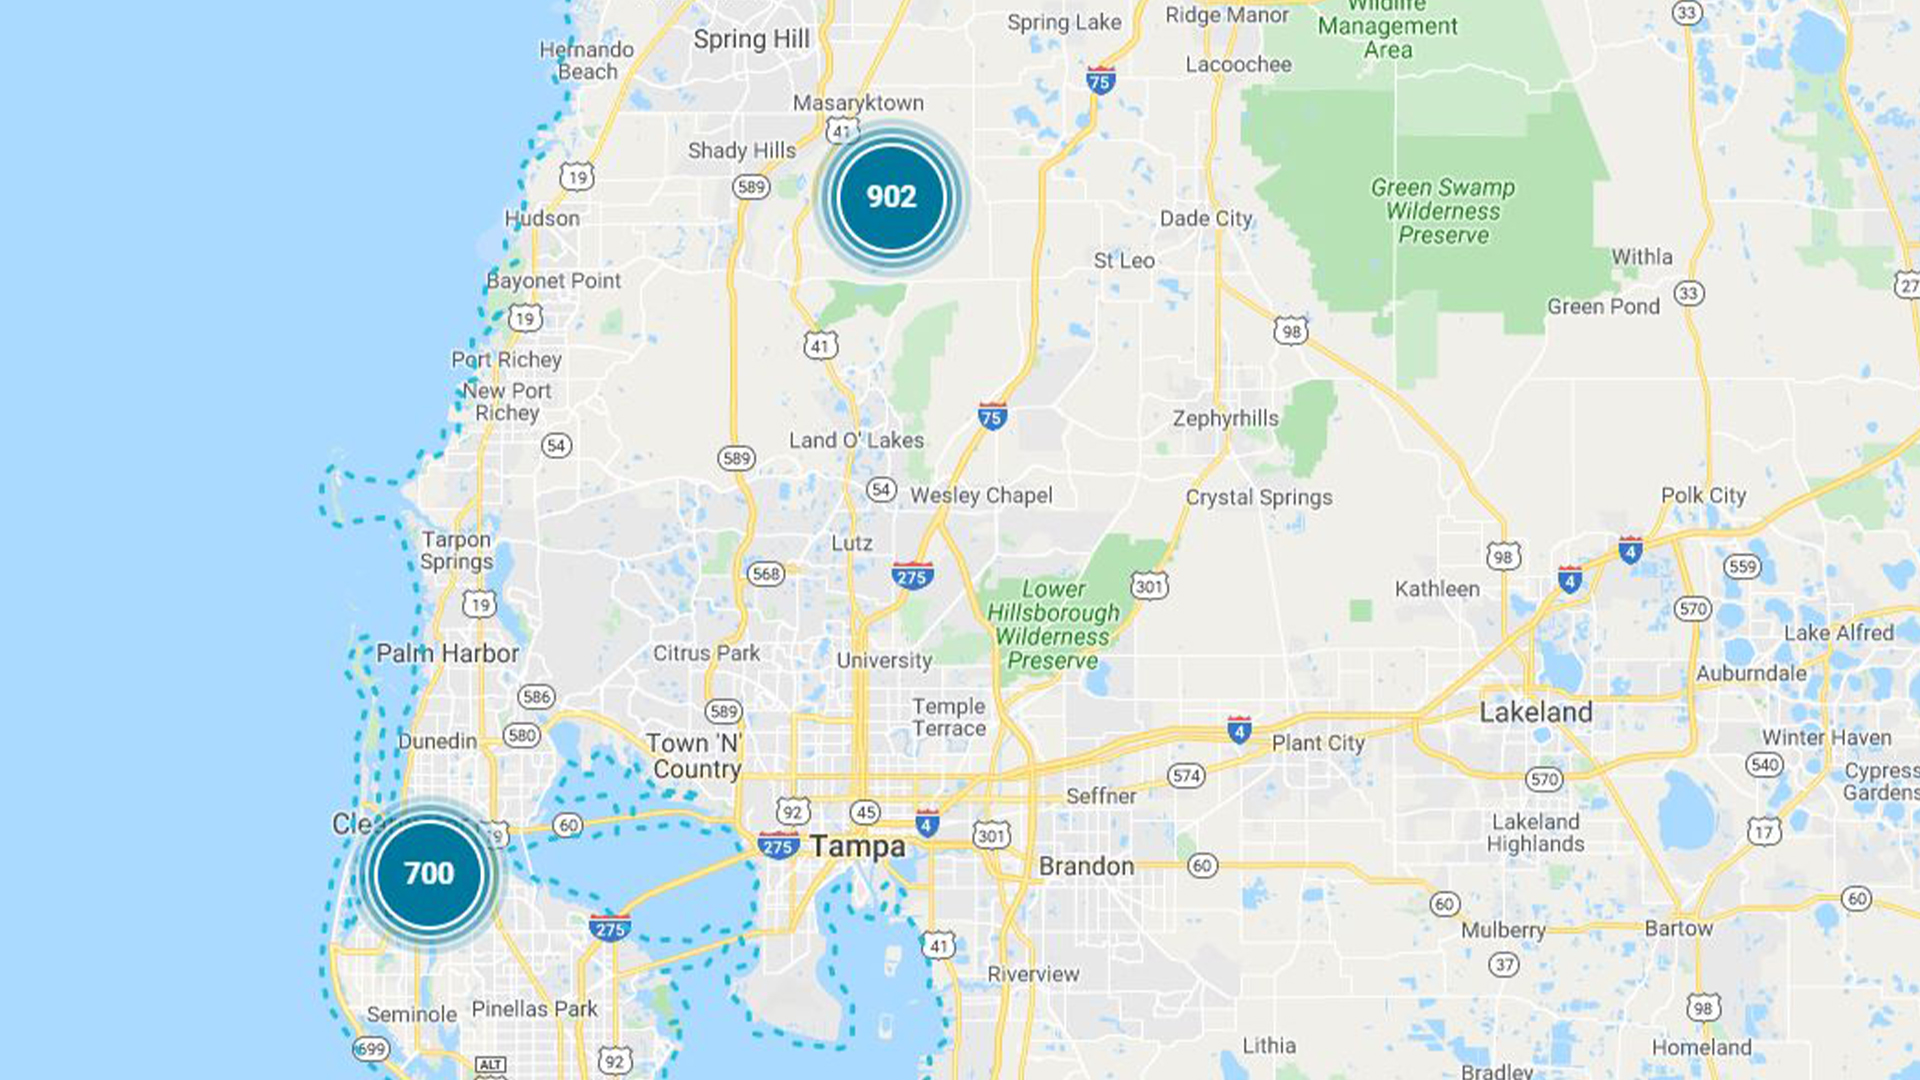 Power outages affect Duke Energy and Lakeland Electric ... on comcast outage map, ameren outage map, nstar outage map, ppl outage map, time warner cable outage map, entergy outage map, sdg&e outage map, northeast utilities outage map, dominion power outage map, duke energy report outage, american electric power outage map, aep outage map, georgia power outage map, sprint outage map,